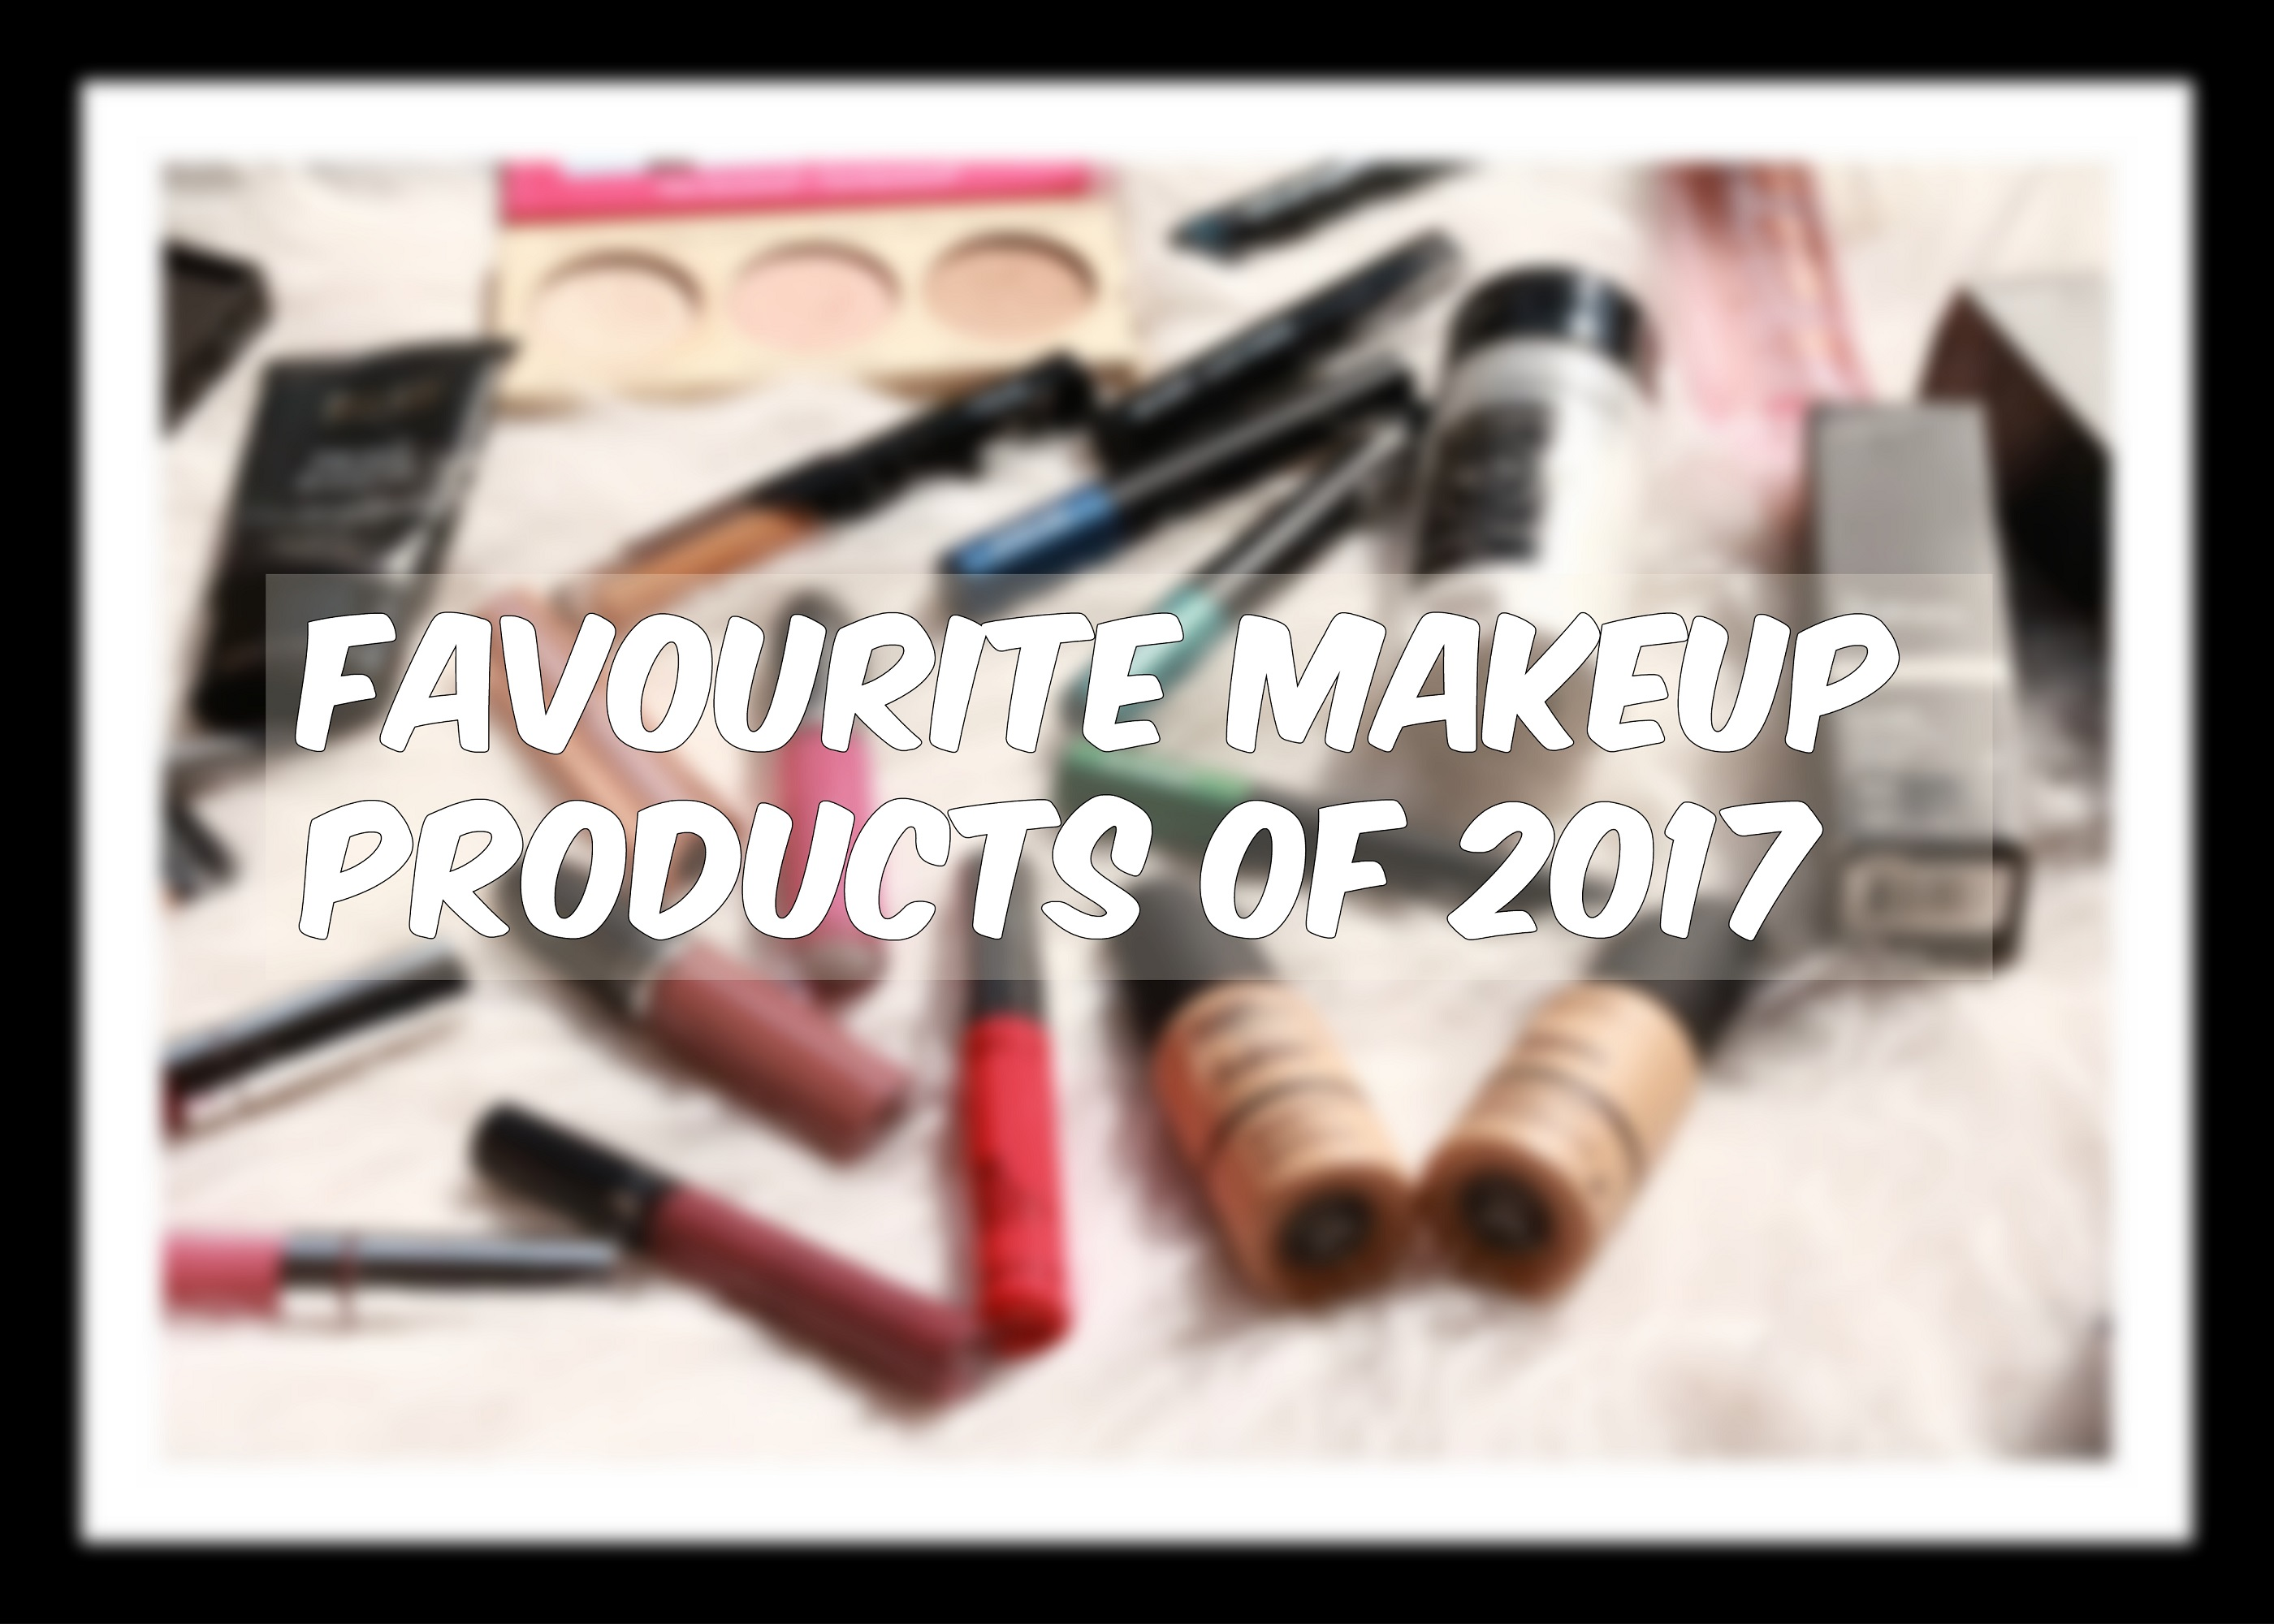 Favourite Makeup Products of 2017